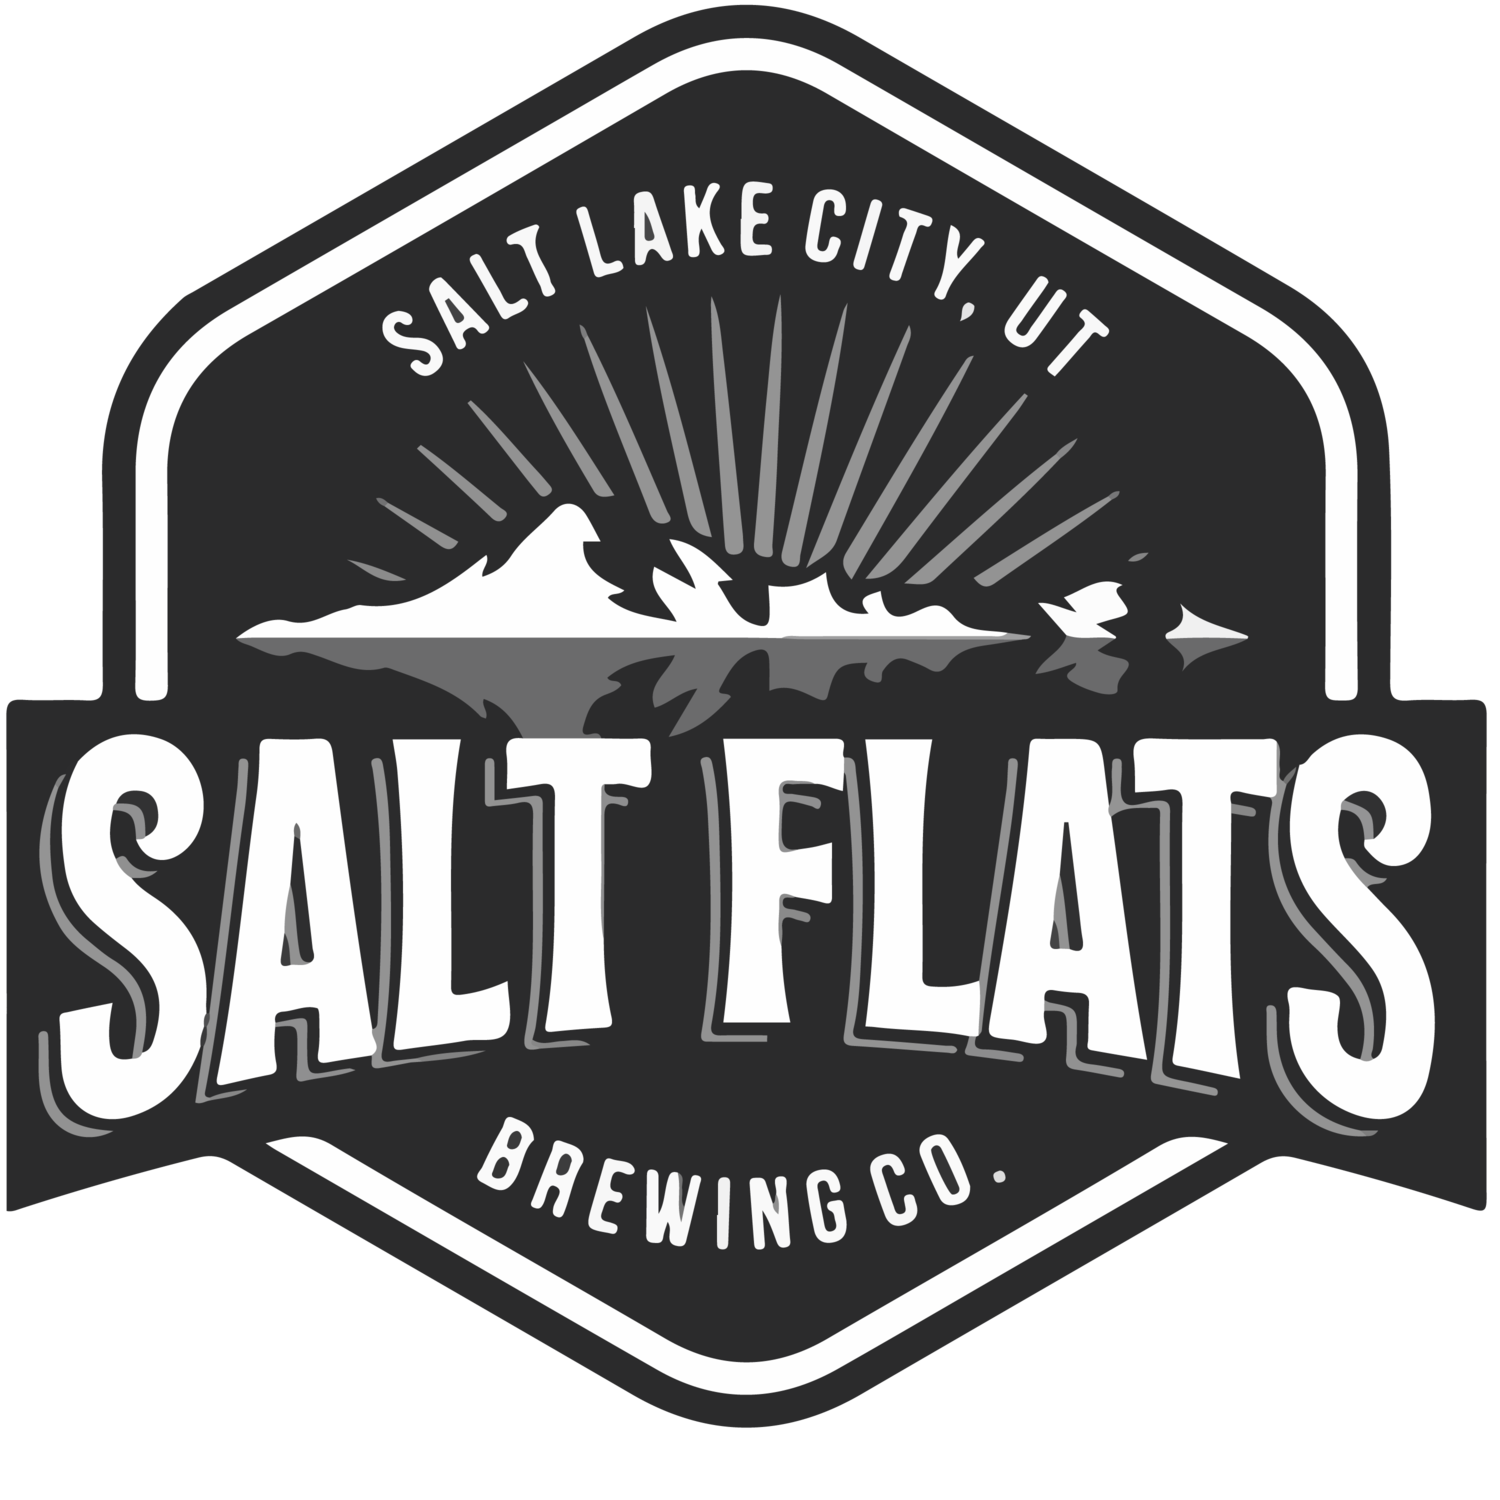 SALT FLATS BREWING